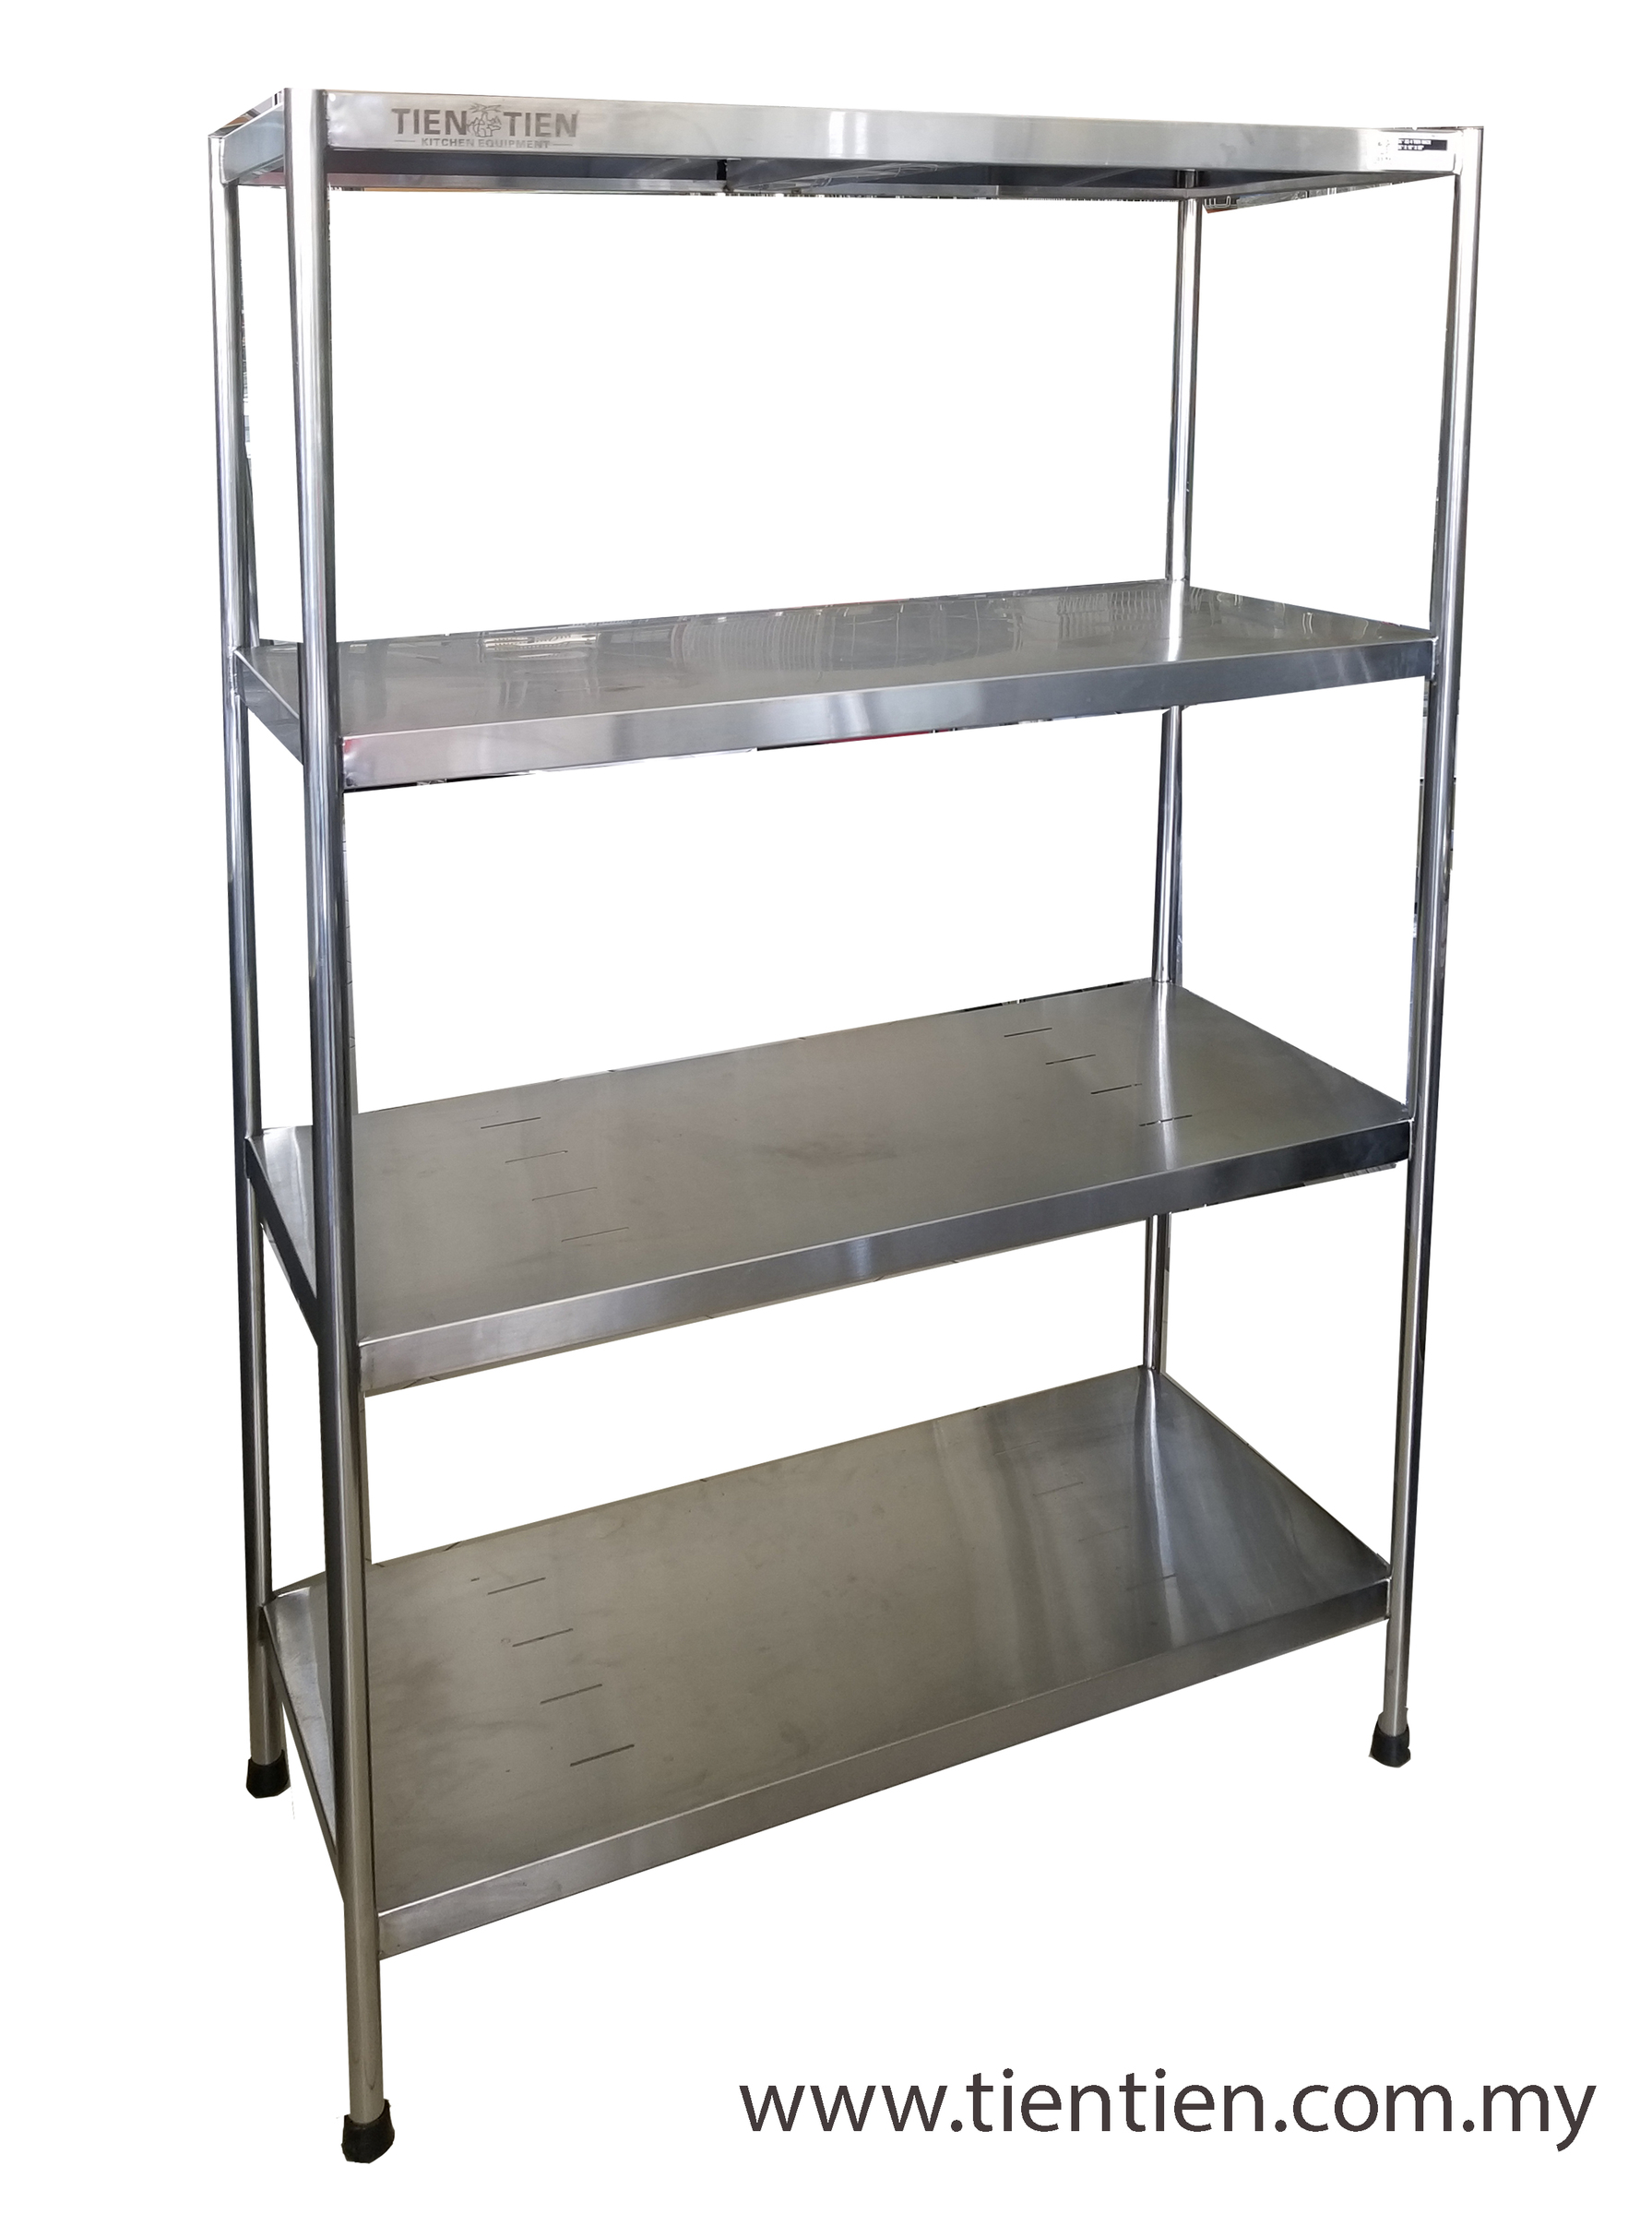 4-tier-rack-malaysia-36-inches-heavy-duty-hand-welded-stainless-steel-malaysia-tientien.jpg